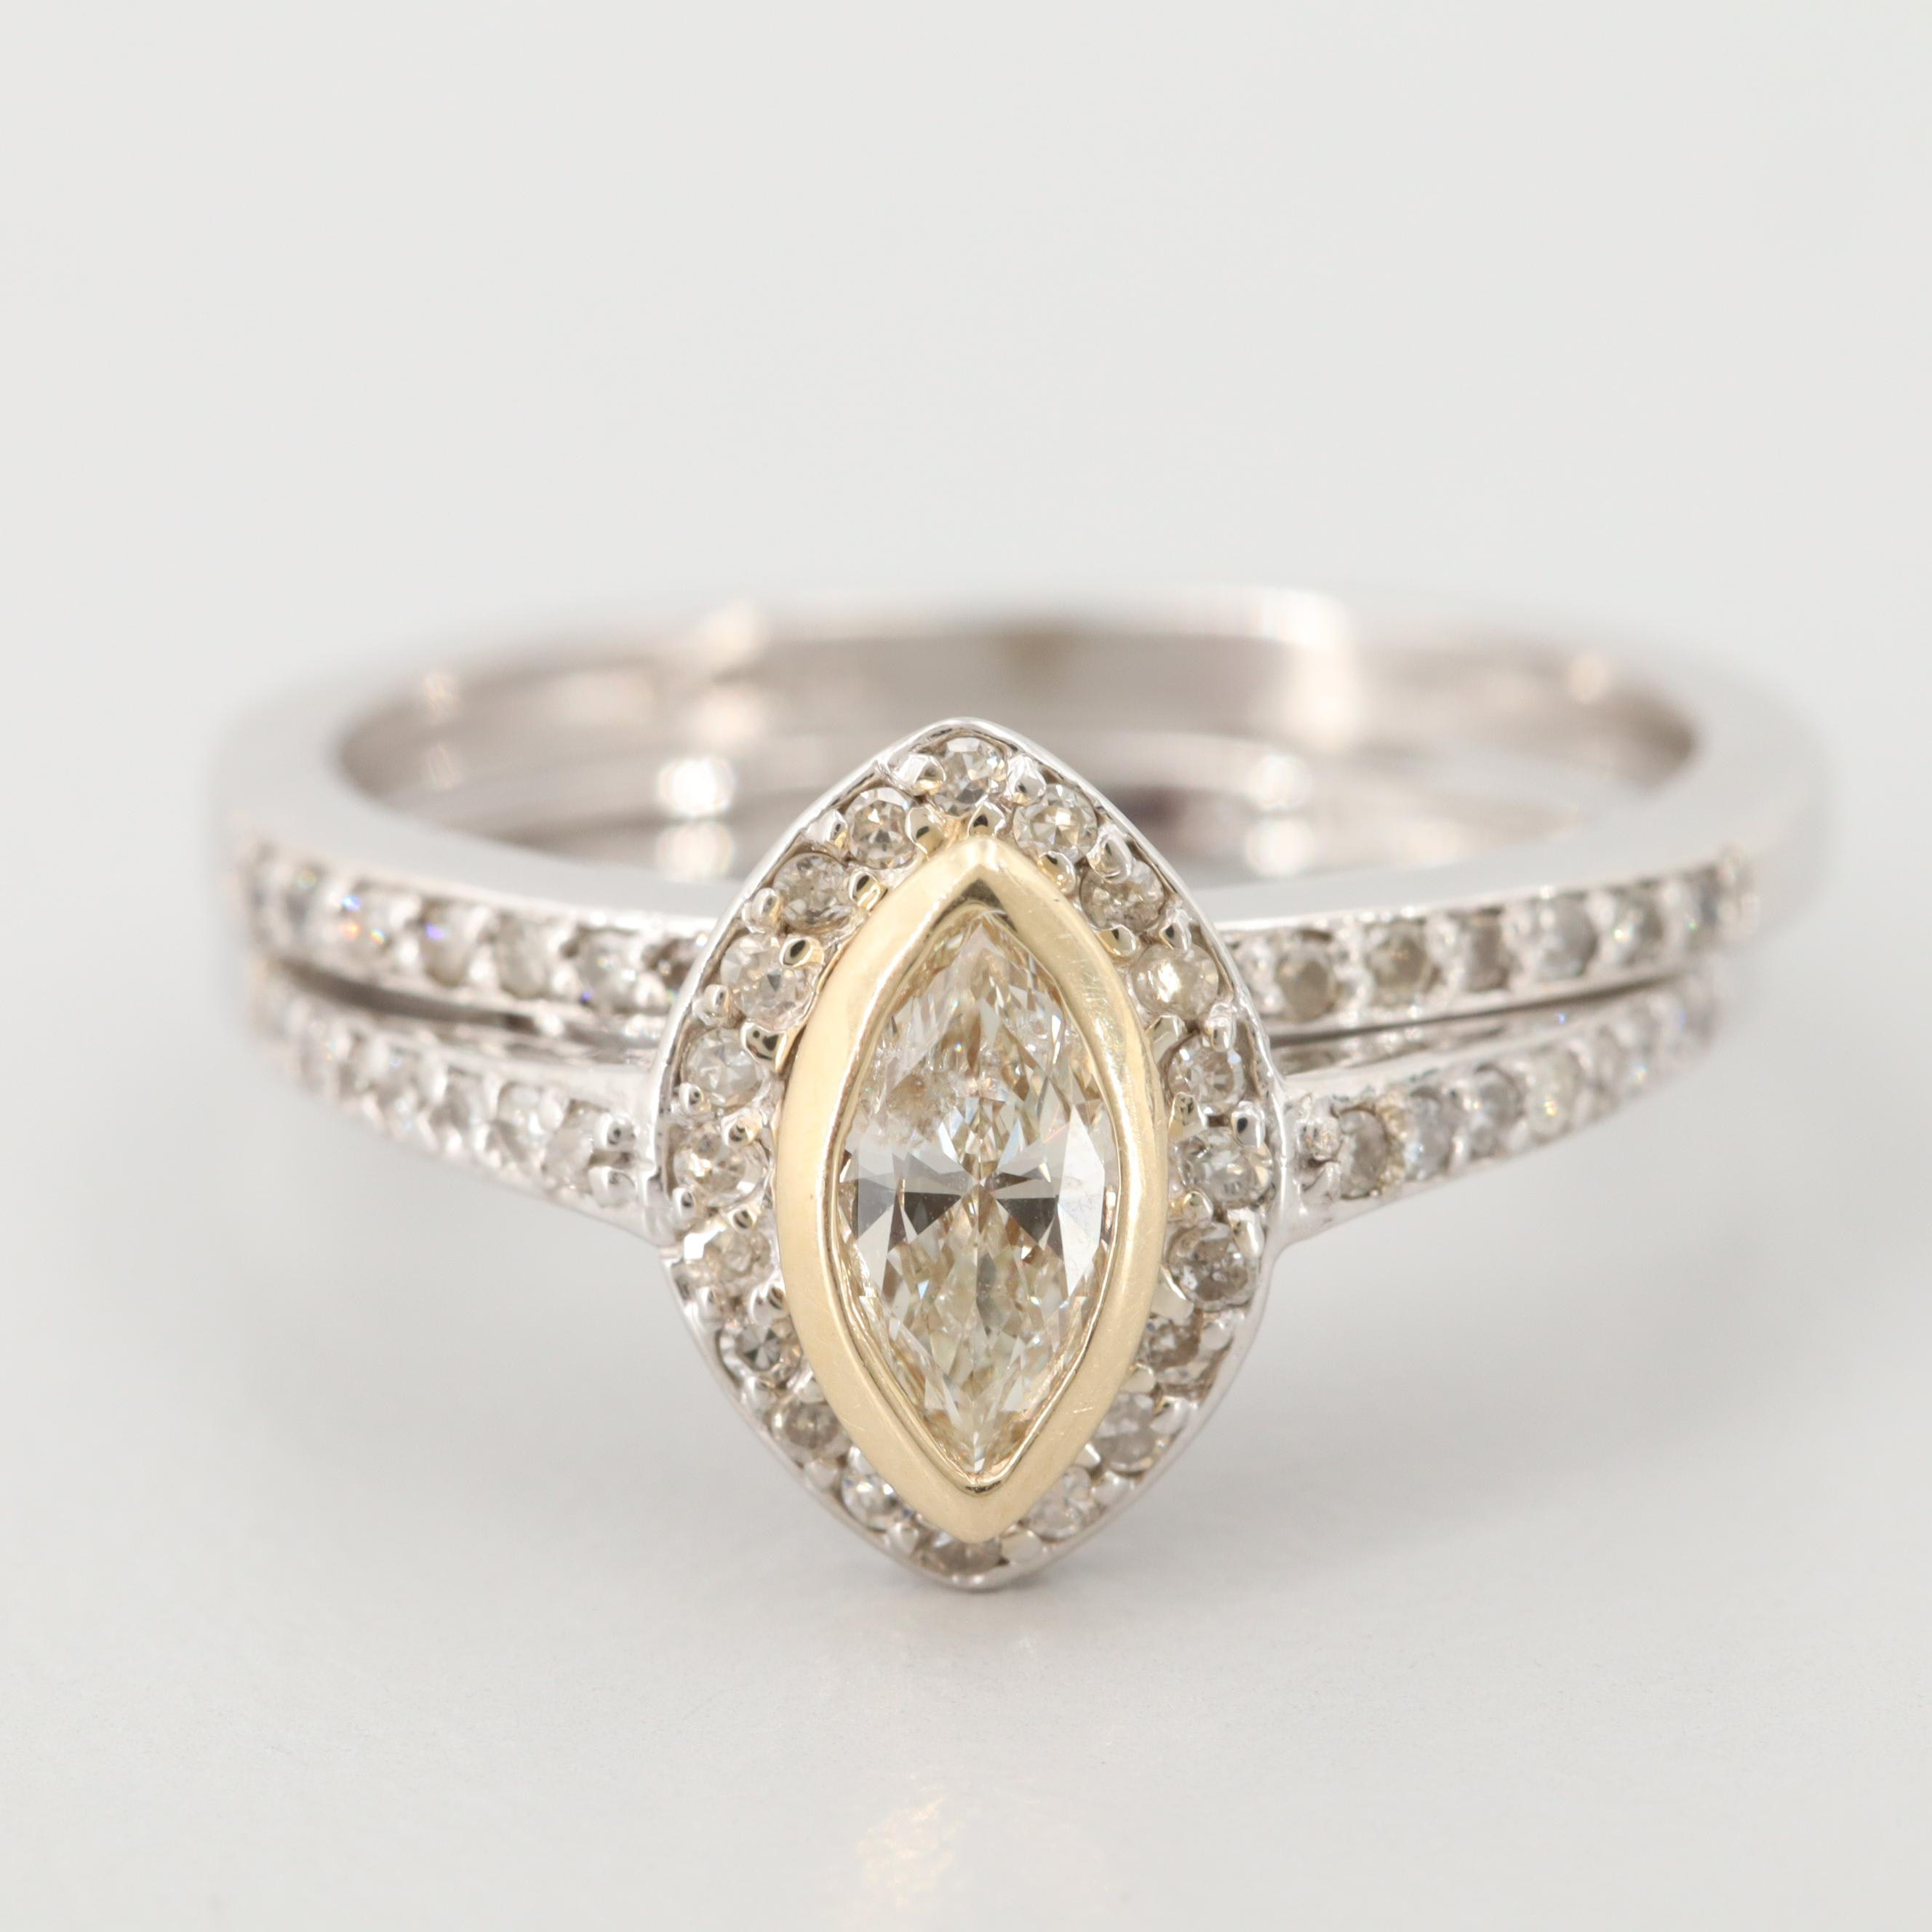 14K White Gold Diamond Ring Set with Yellow Gold Accents